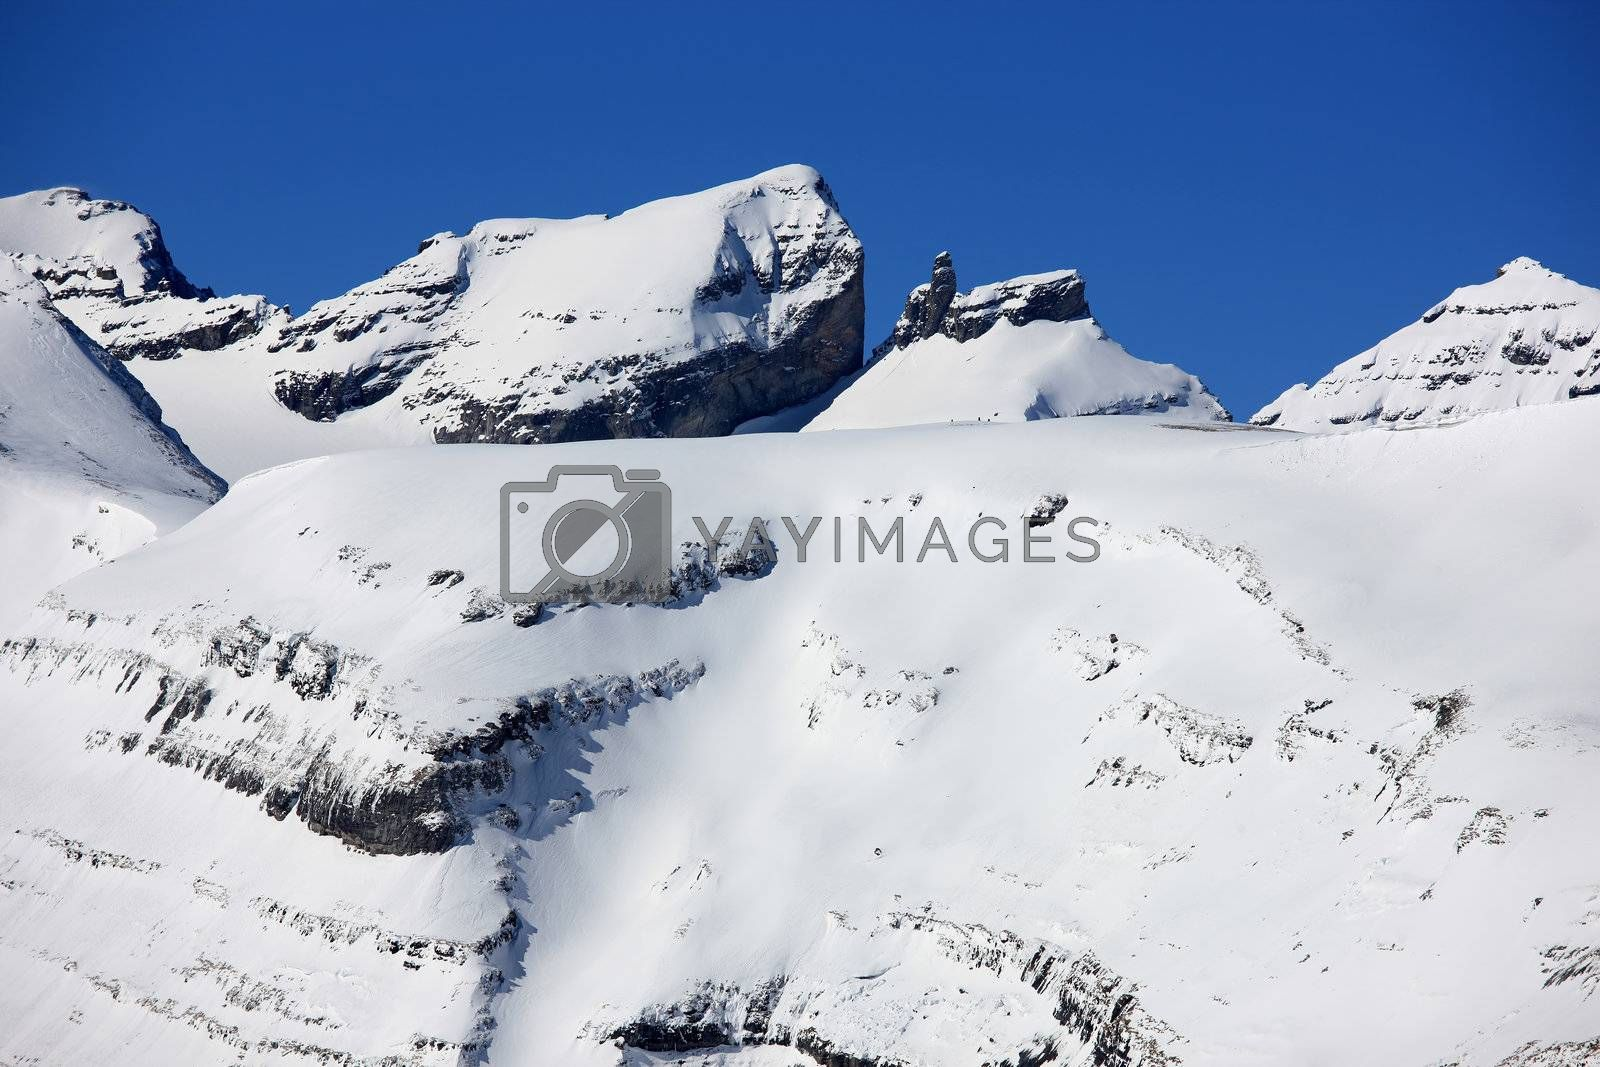 Royalty free image of Swiss mountains in Winter by monner